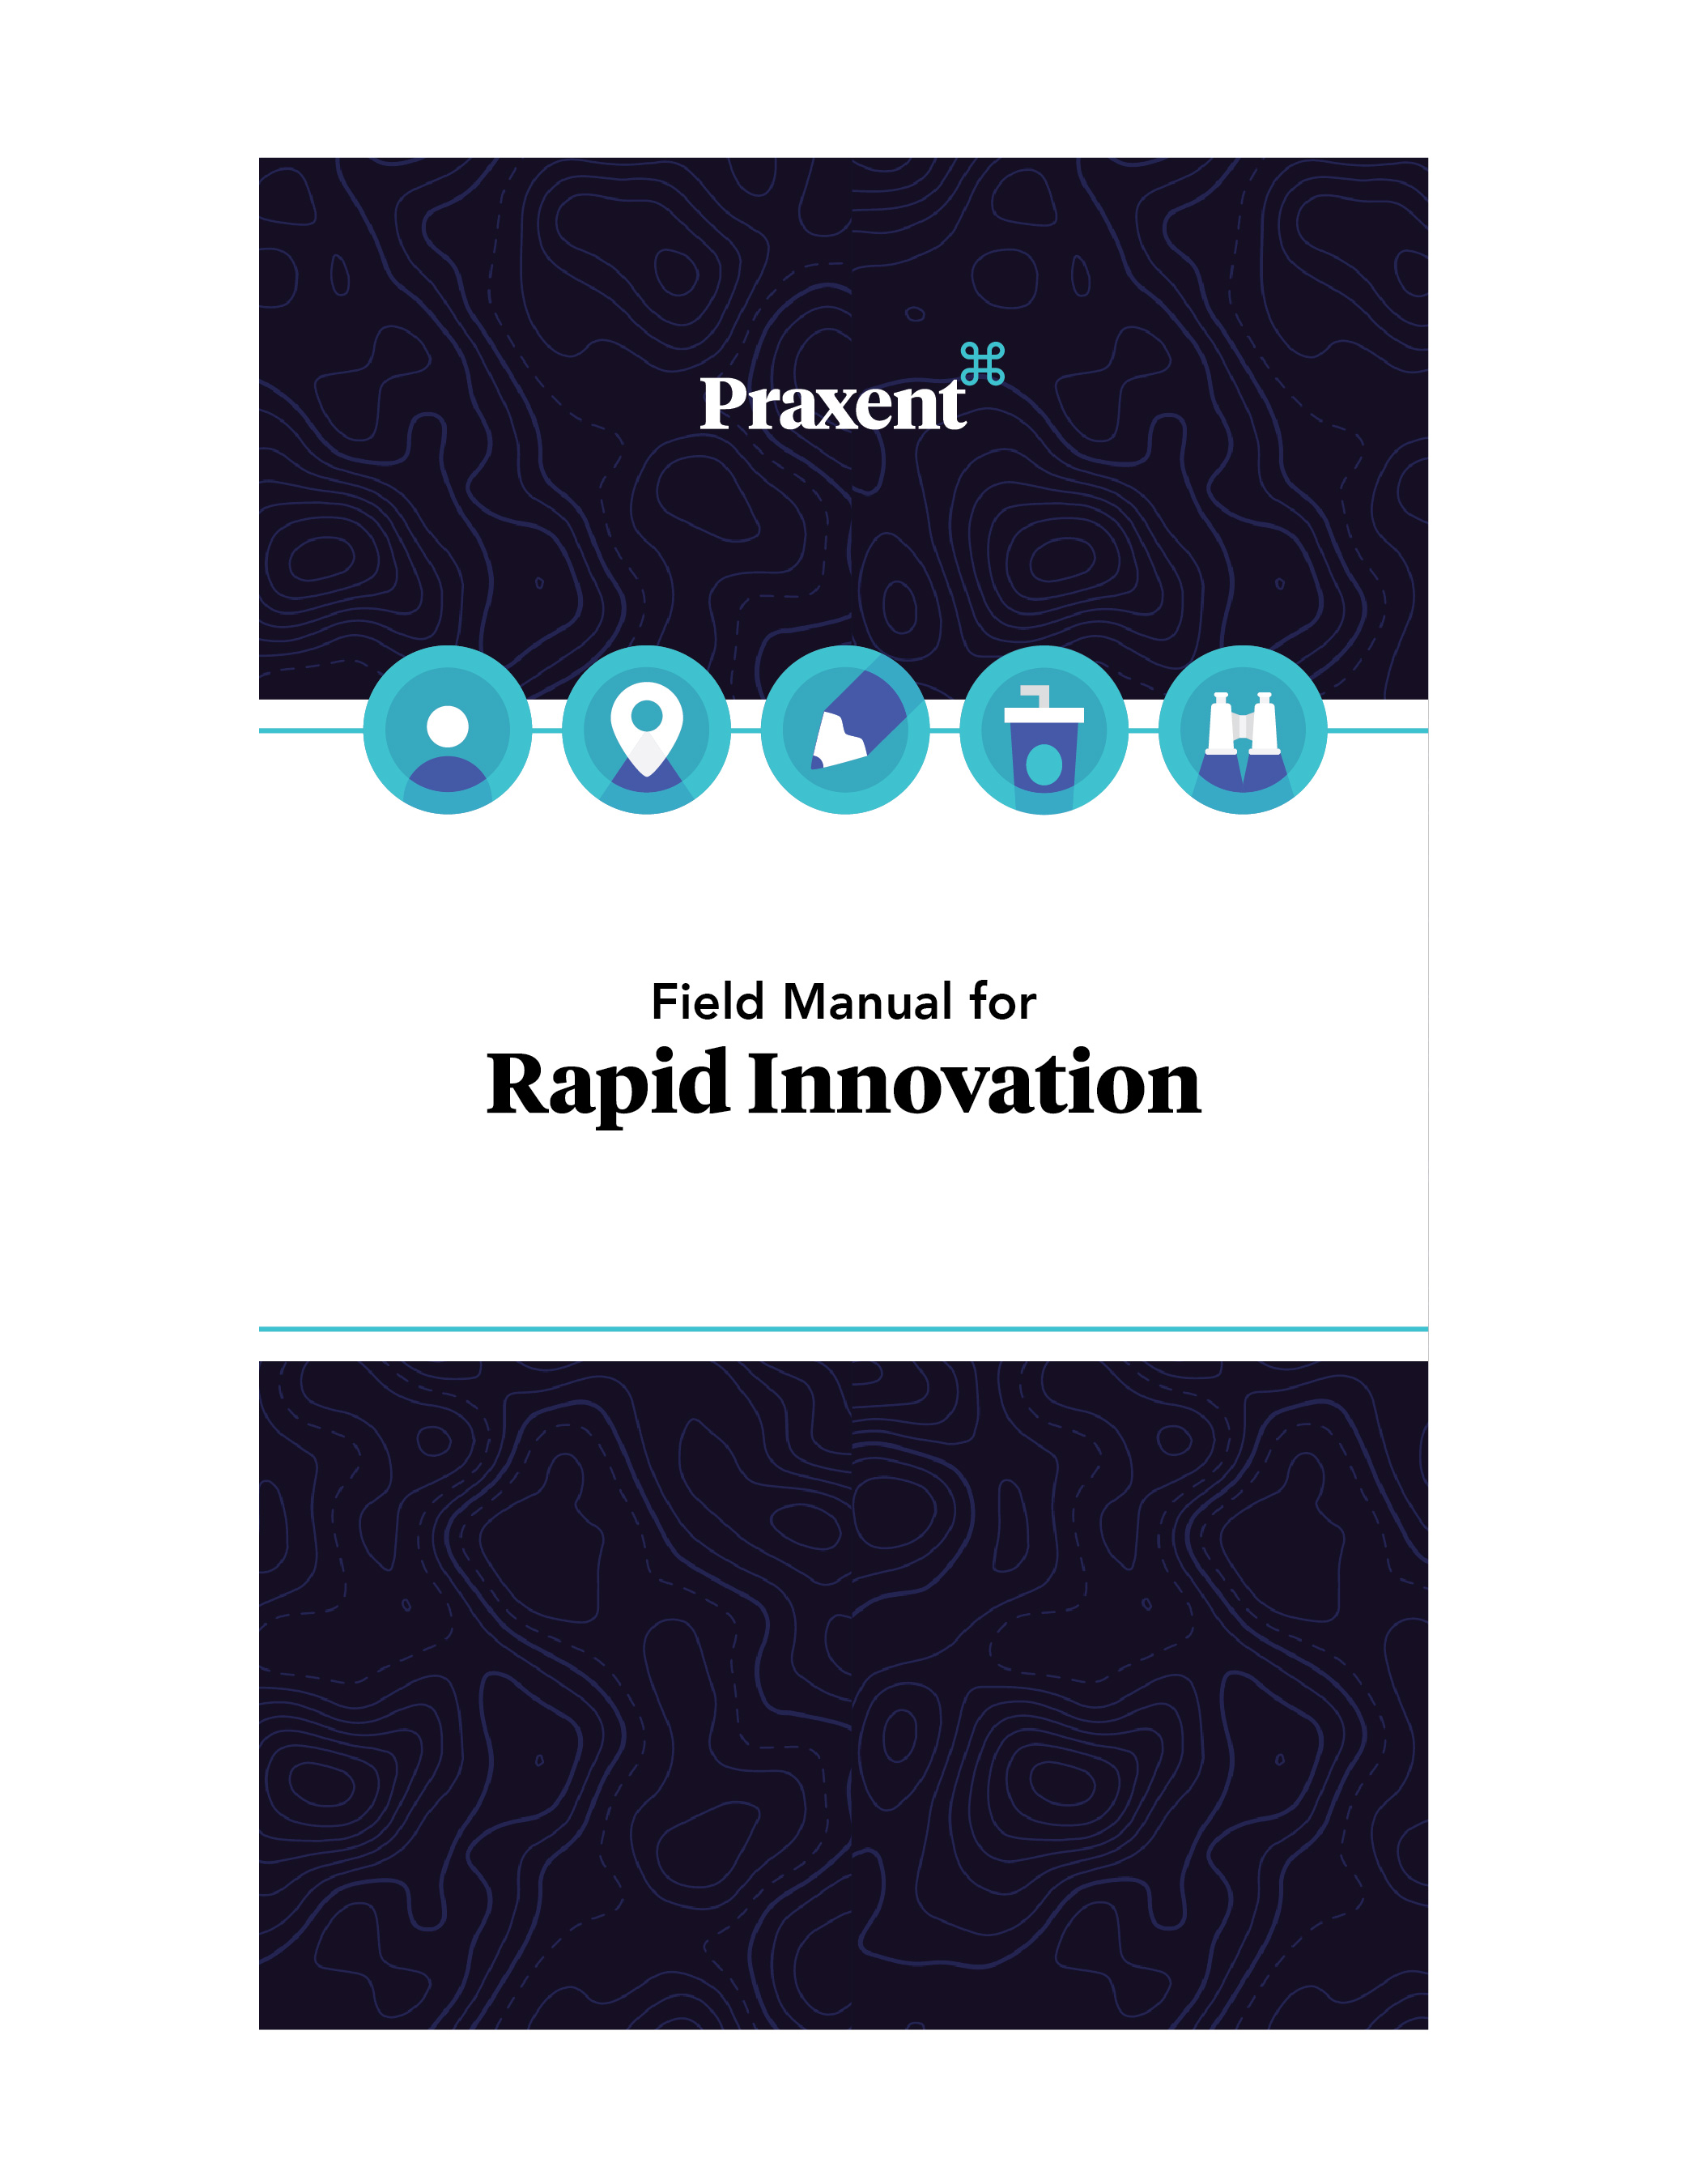 Download Praxent field manual for rapid innovation ebook Praxent